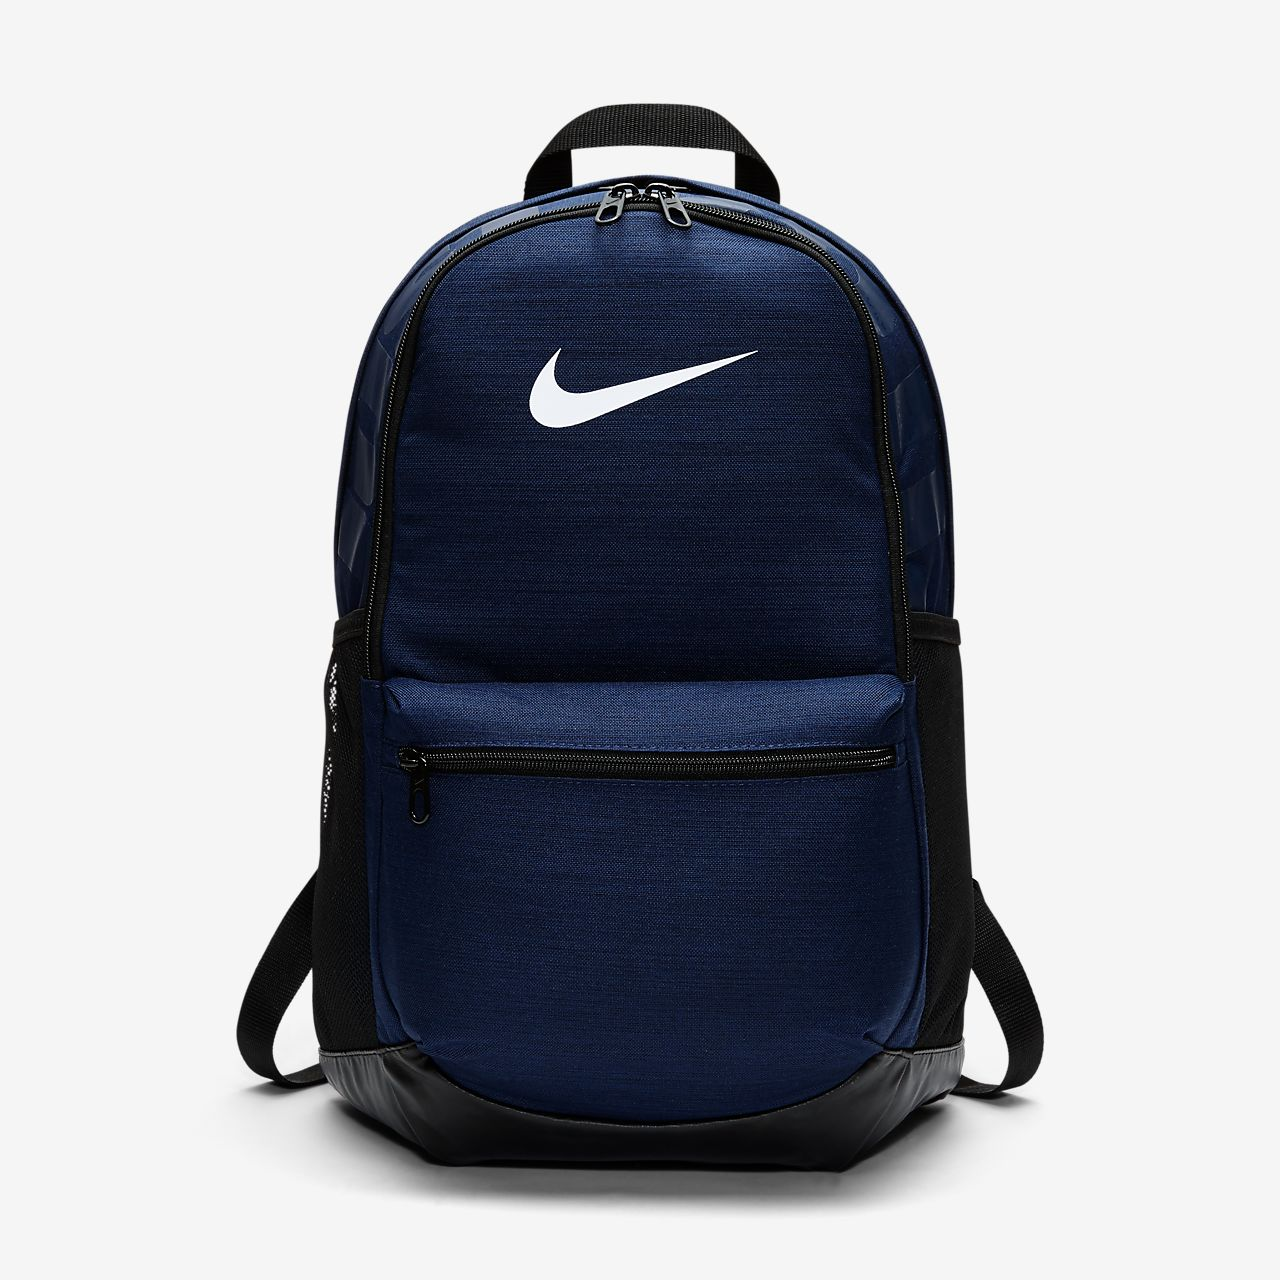 80ae382acfe0 Nike Brasilia (Medium) Training Backpack. Nike.com AU